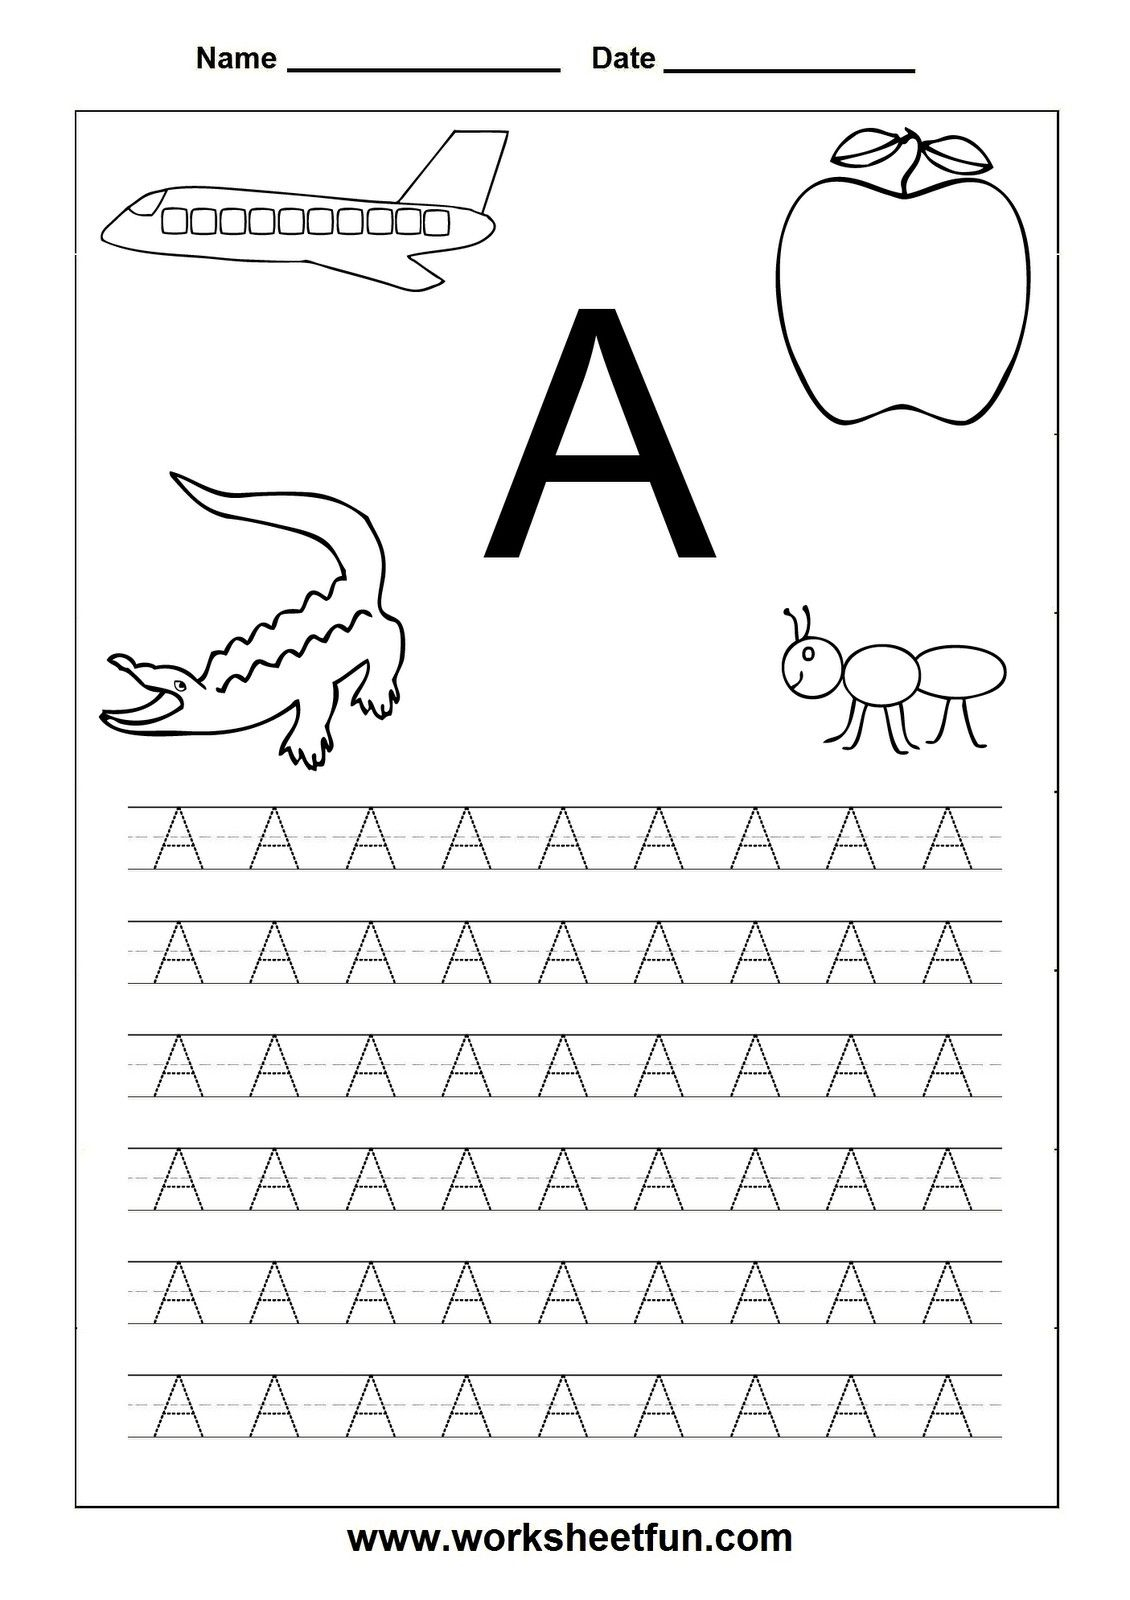 Free Printable Alphabet Tracers |  Printable Page Tags Printable - Free Printable Alphabet Pages